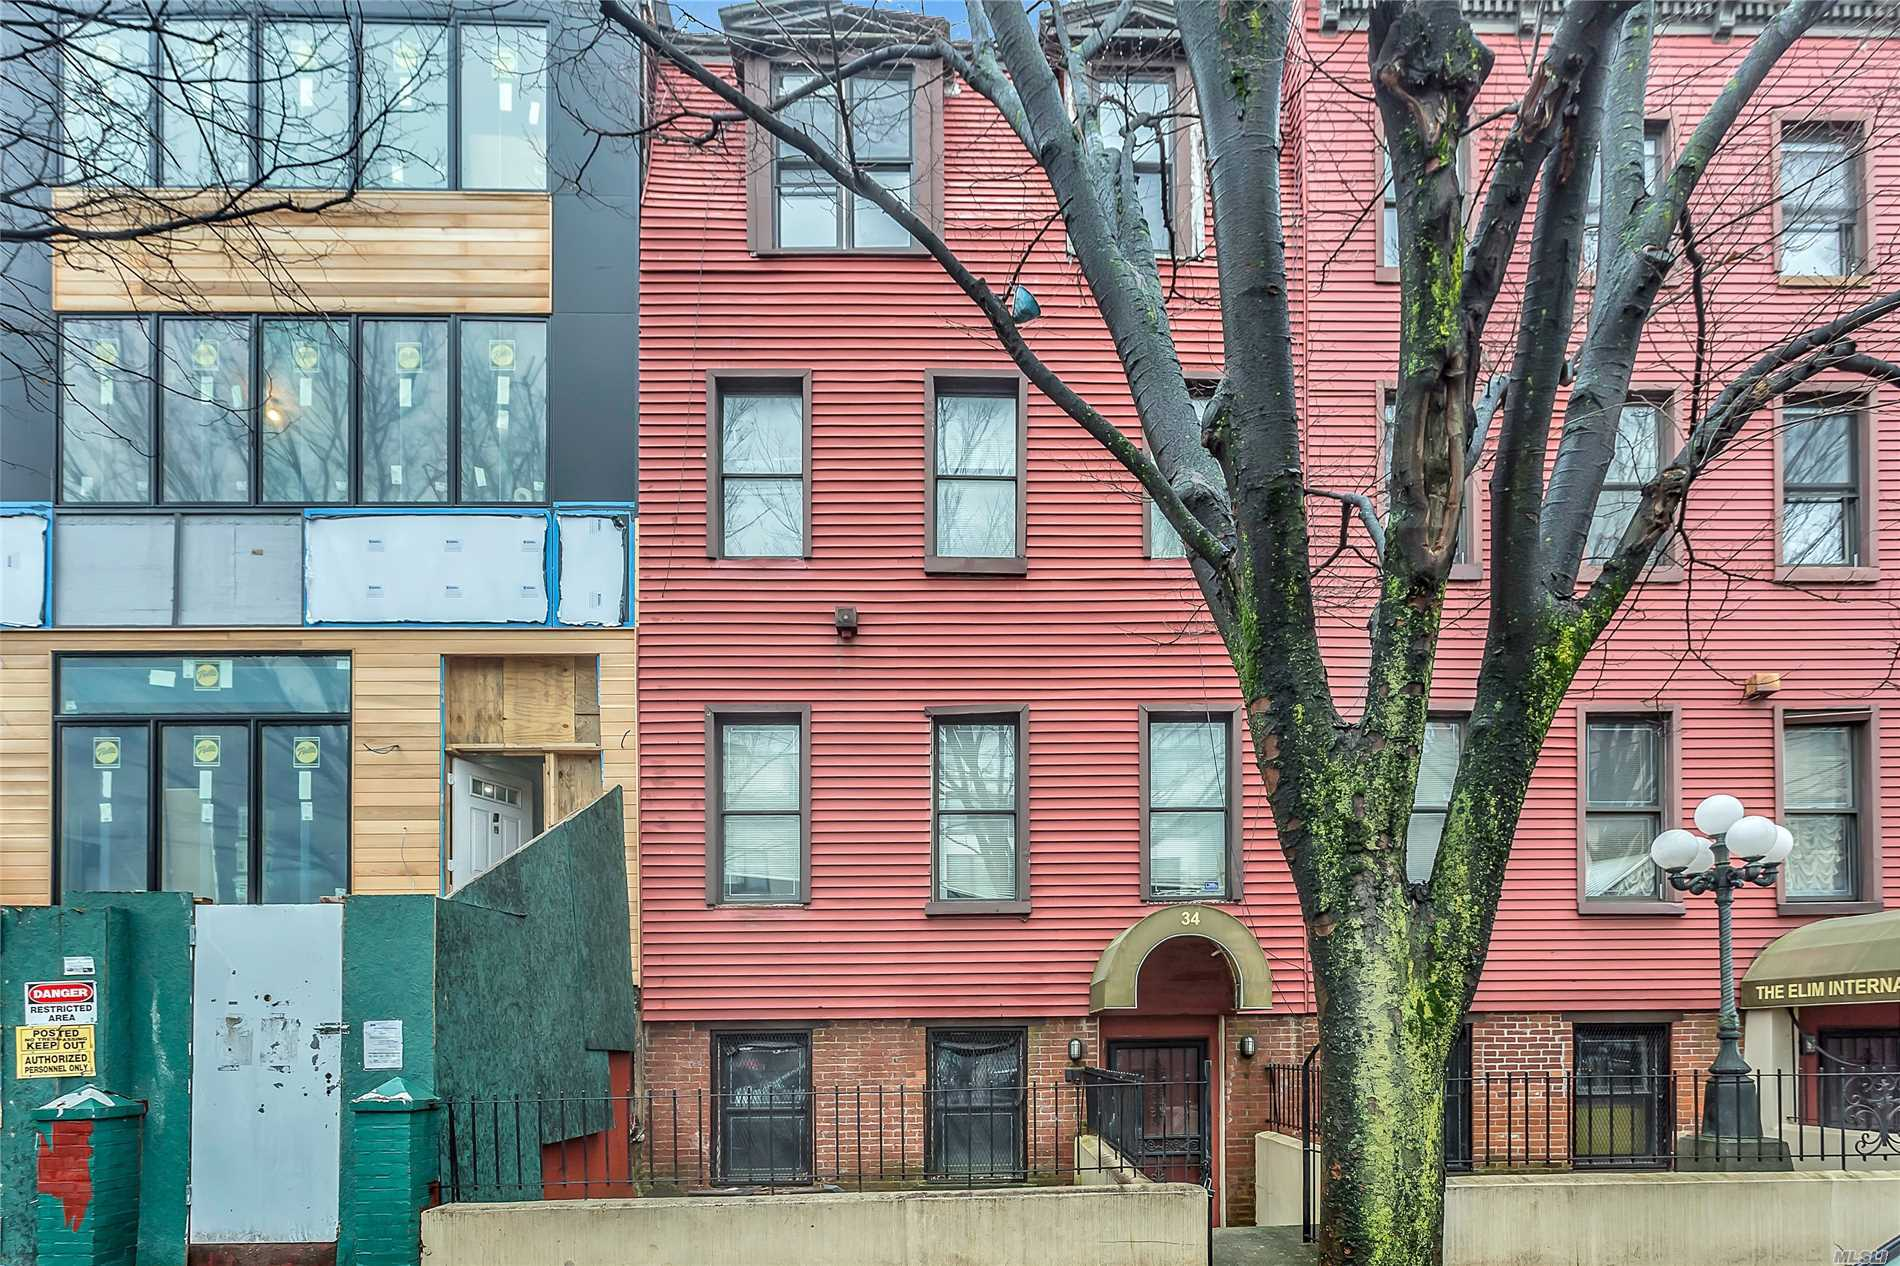 Great Opportunity To Renovate 4 Story Property In Desirable Bed-Stuy Bordering Prestigious Clinton Hill. Picturesque Block Surrounded By Newly Developed Homes. Renovation Started Now Awaits You To Bring To Completion. Potential Two Family (2 Bed/2 Bath Garden Level Unit And 5 Bed/4 Bath Triplex Unit). Perfect For Investors, Developers Or Buyers Looking To Execute Their Own Vision. Bring Your Architect, Your Contractor, And Your Imagination To Create Your Dream Home! Minutes Away From Manhattan.